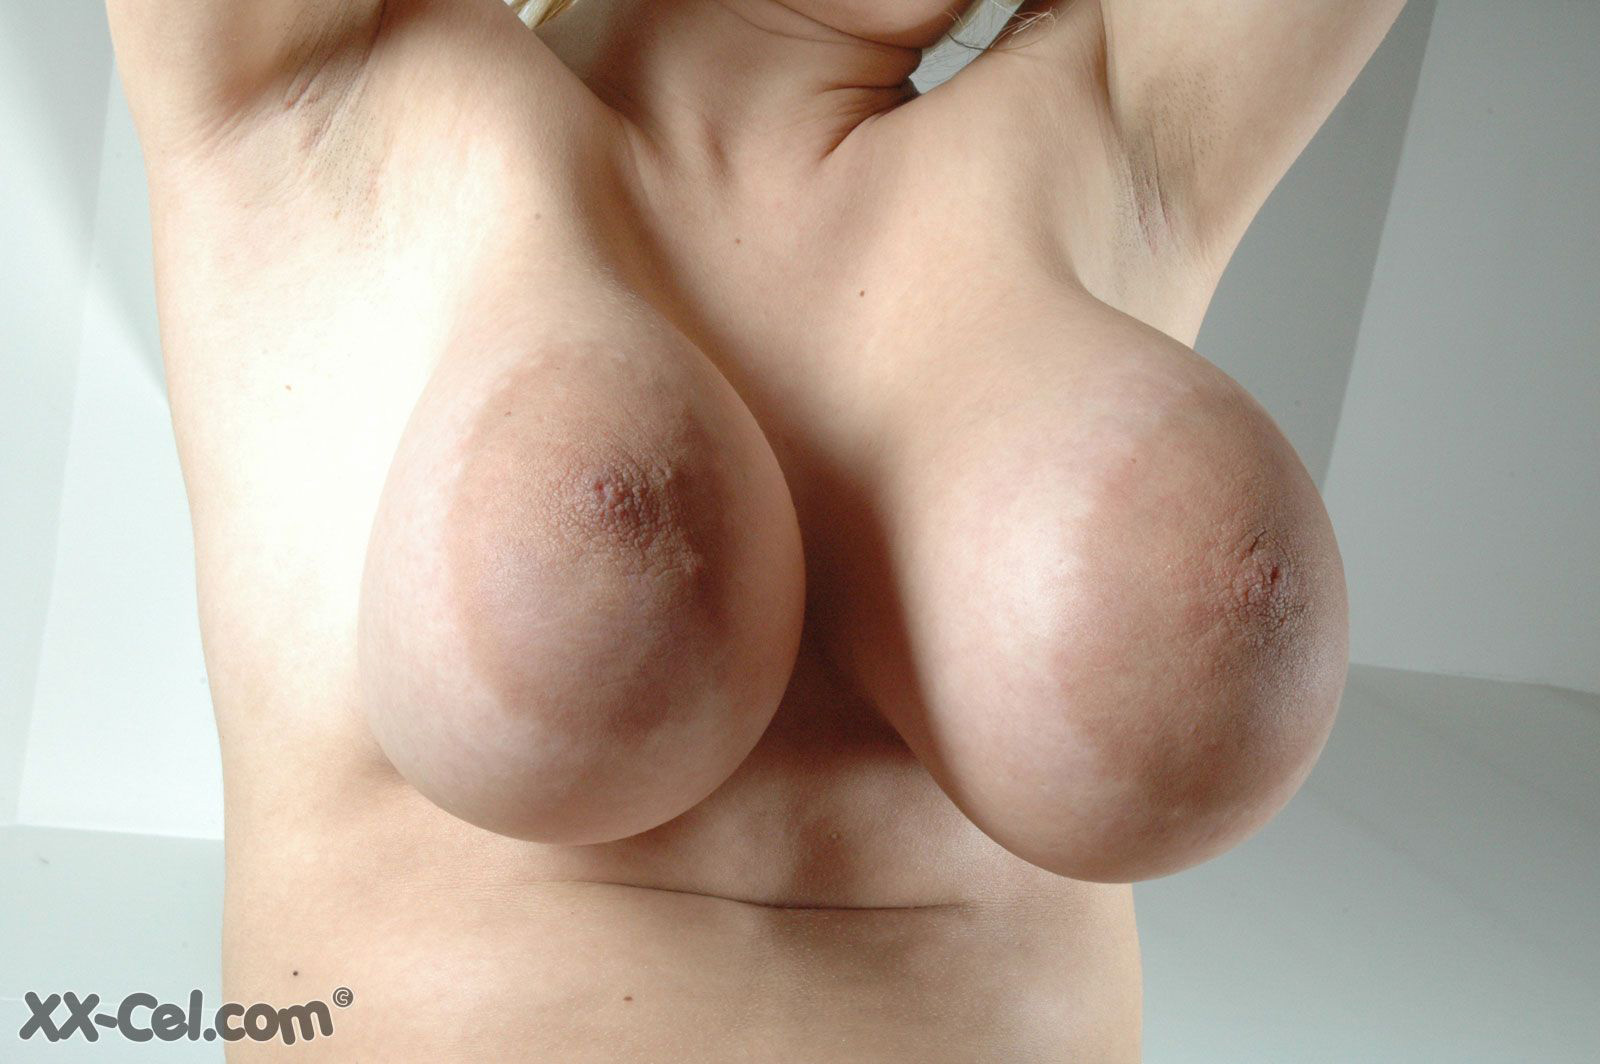 ALWAYS big breast archive love find